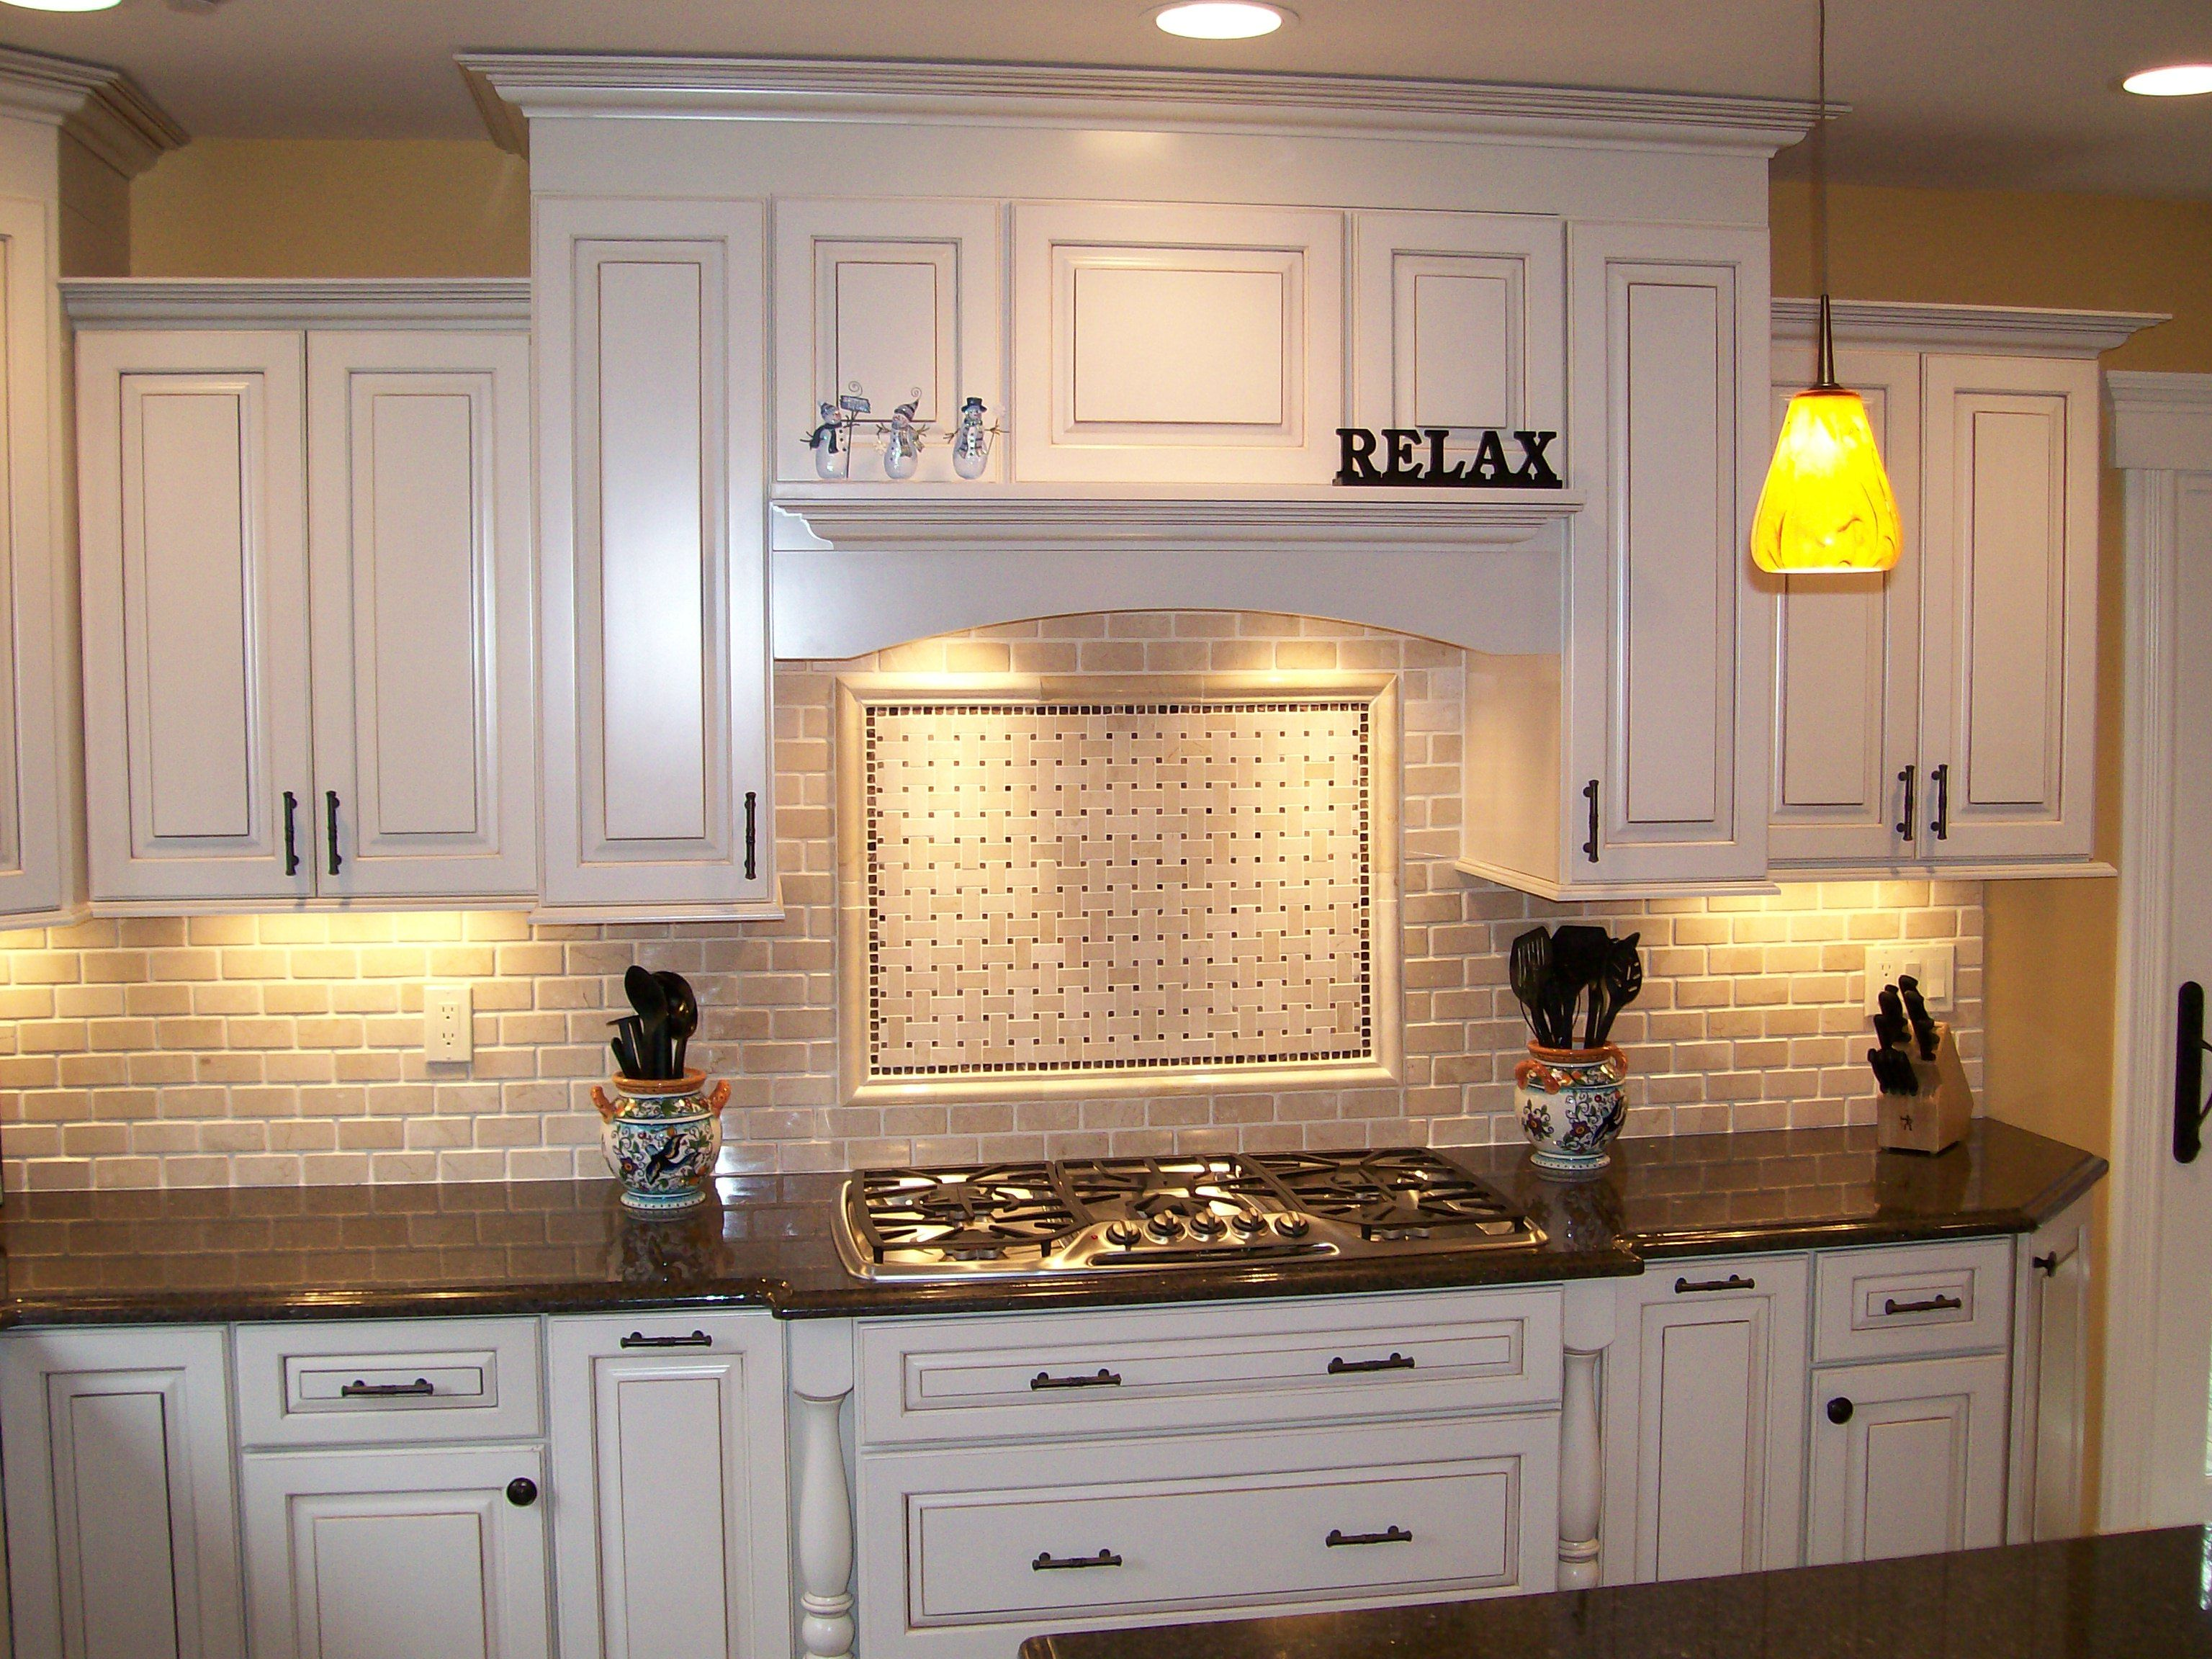 Uncategorized Backsplash For Black And White Kitchen kitchen nice brick backsplash in with white cabinet and storage black countertop and